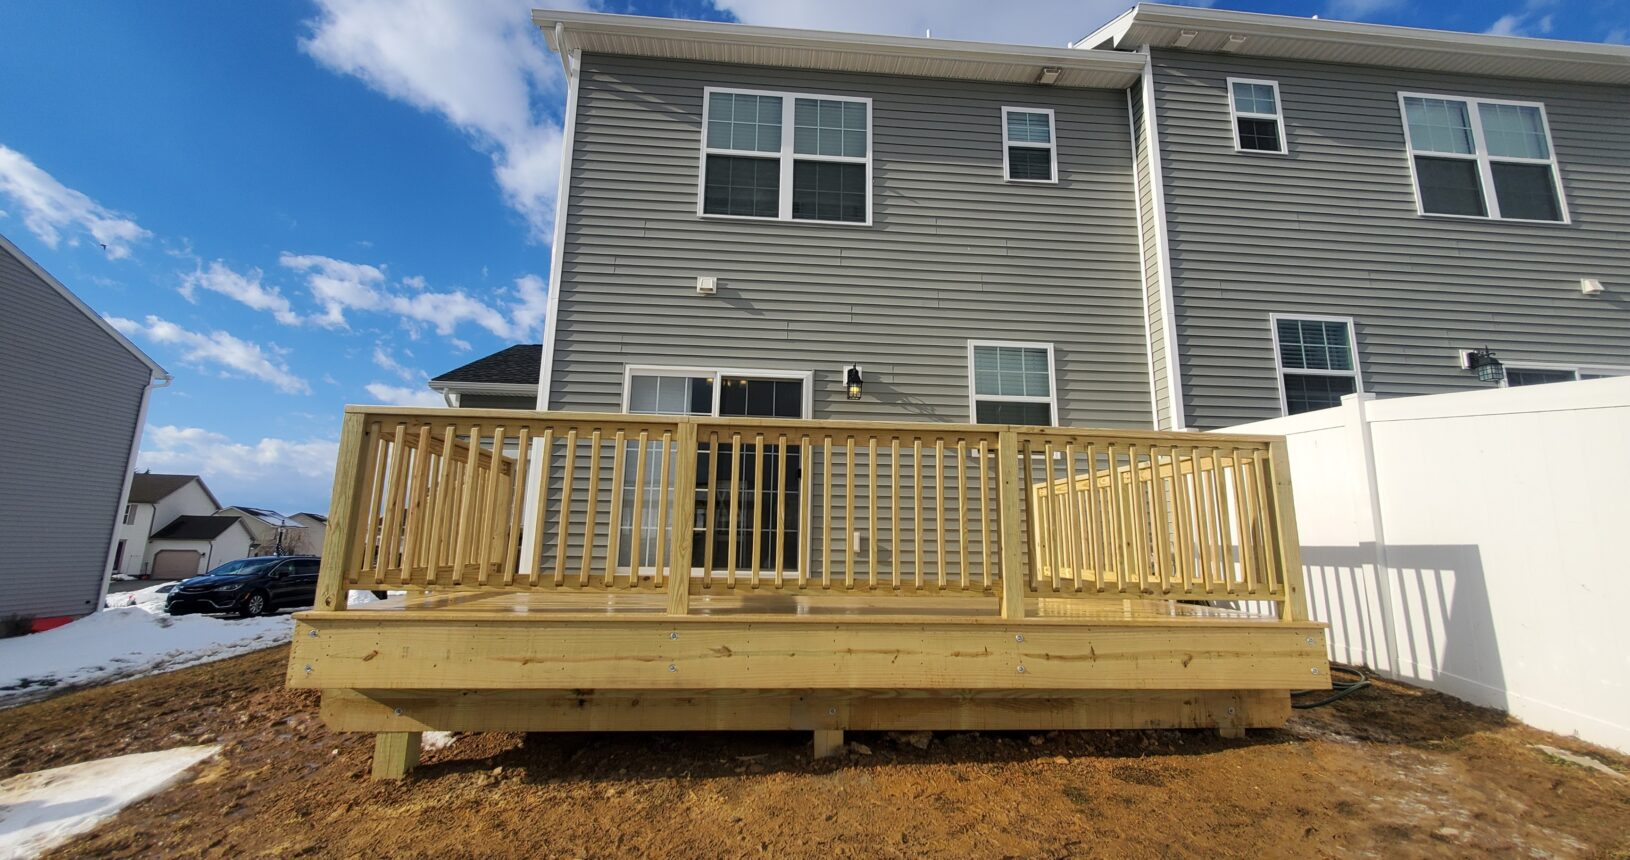 Wood Deck Builders - Hanover, PA - Hanover Deck Contractors - DREAMscape's